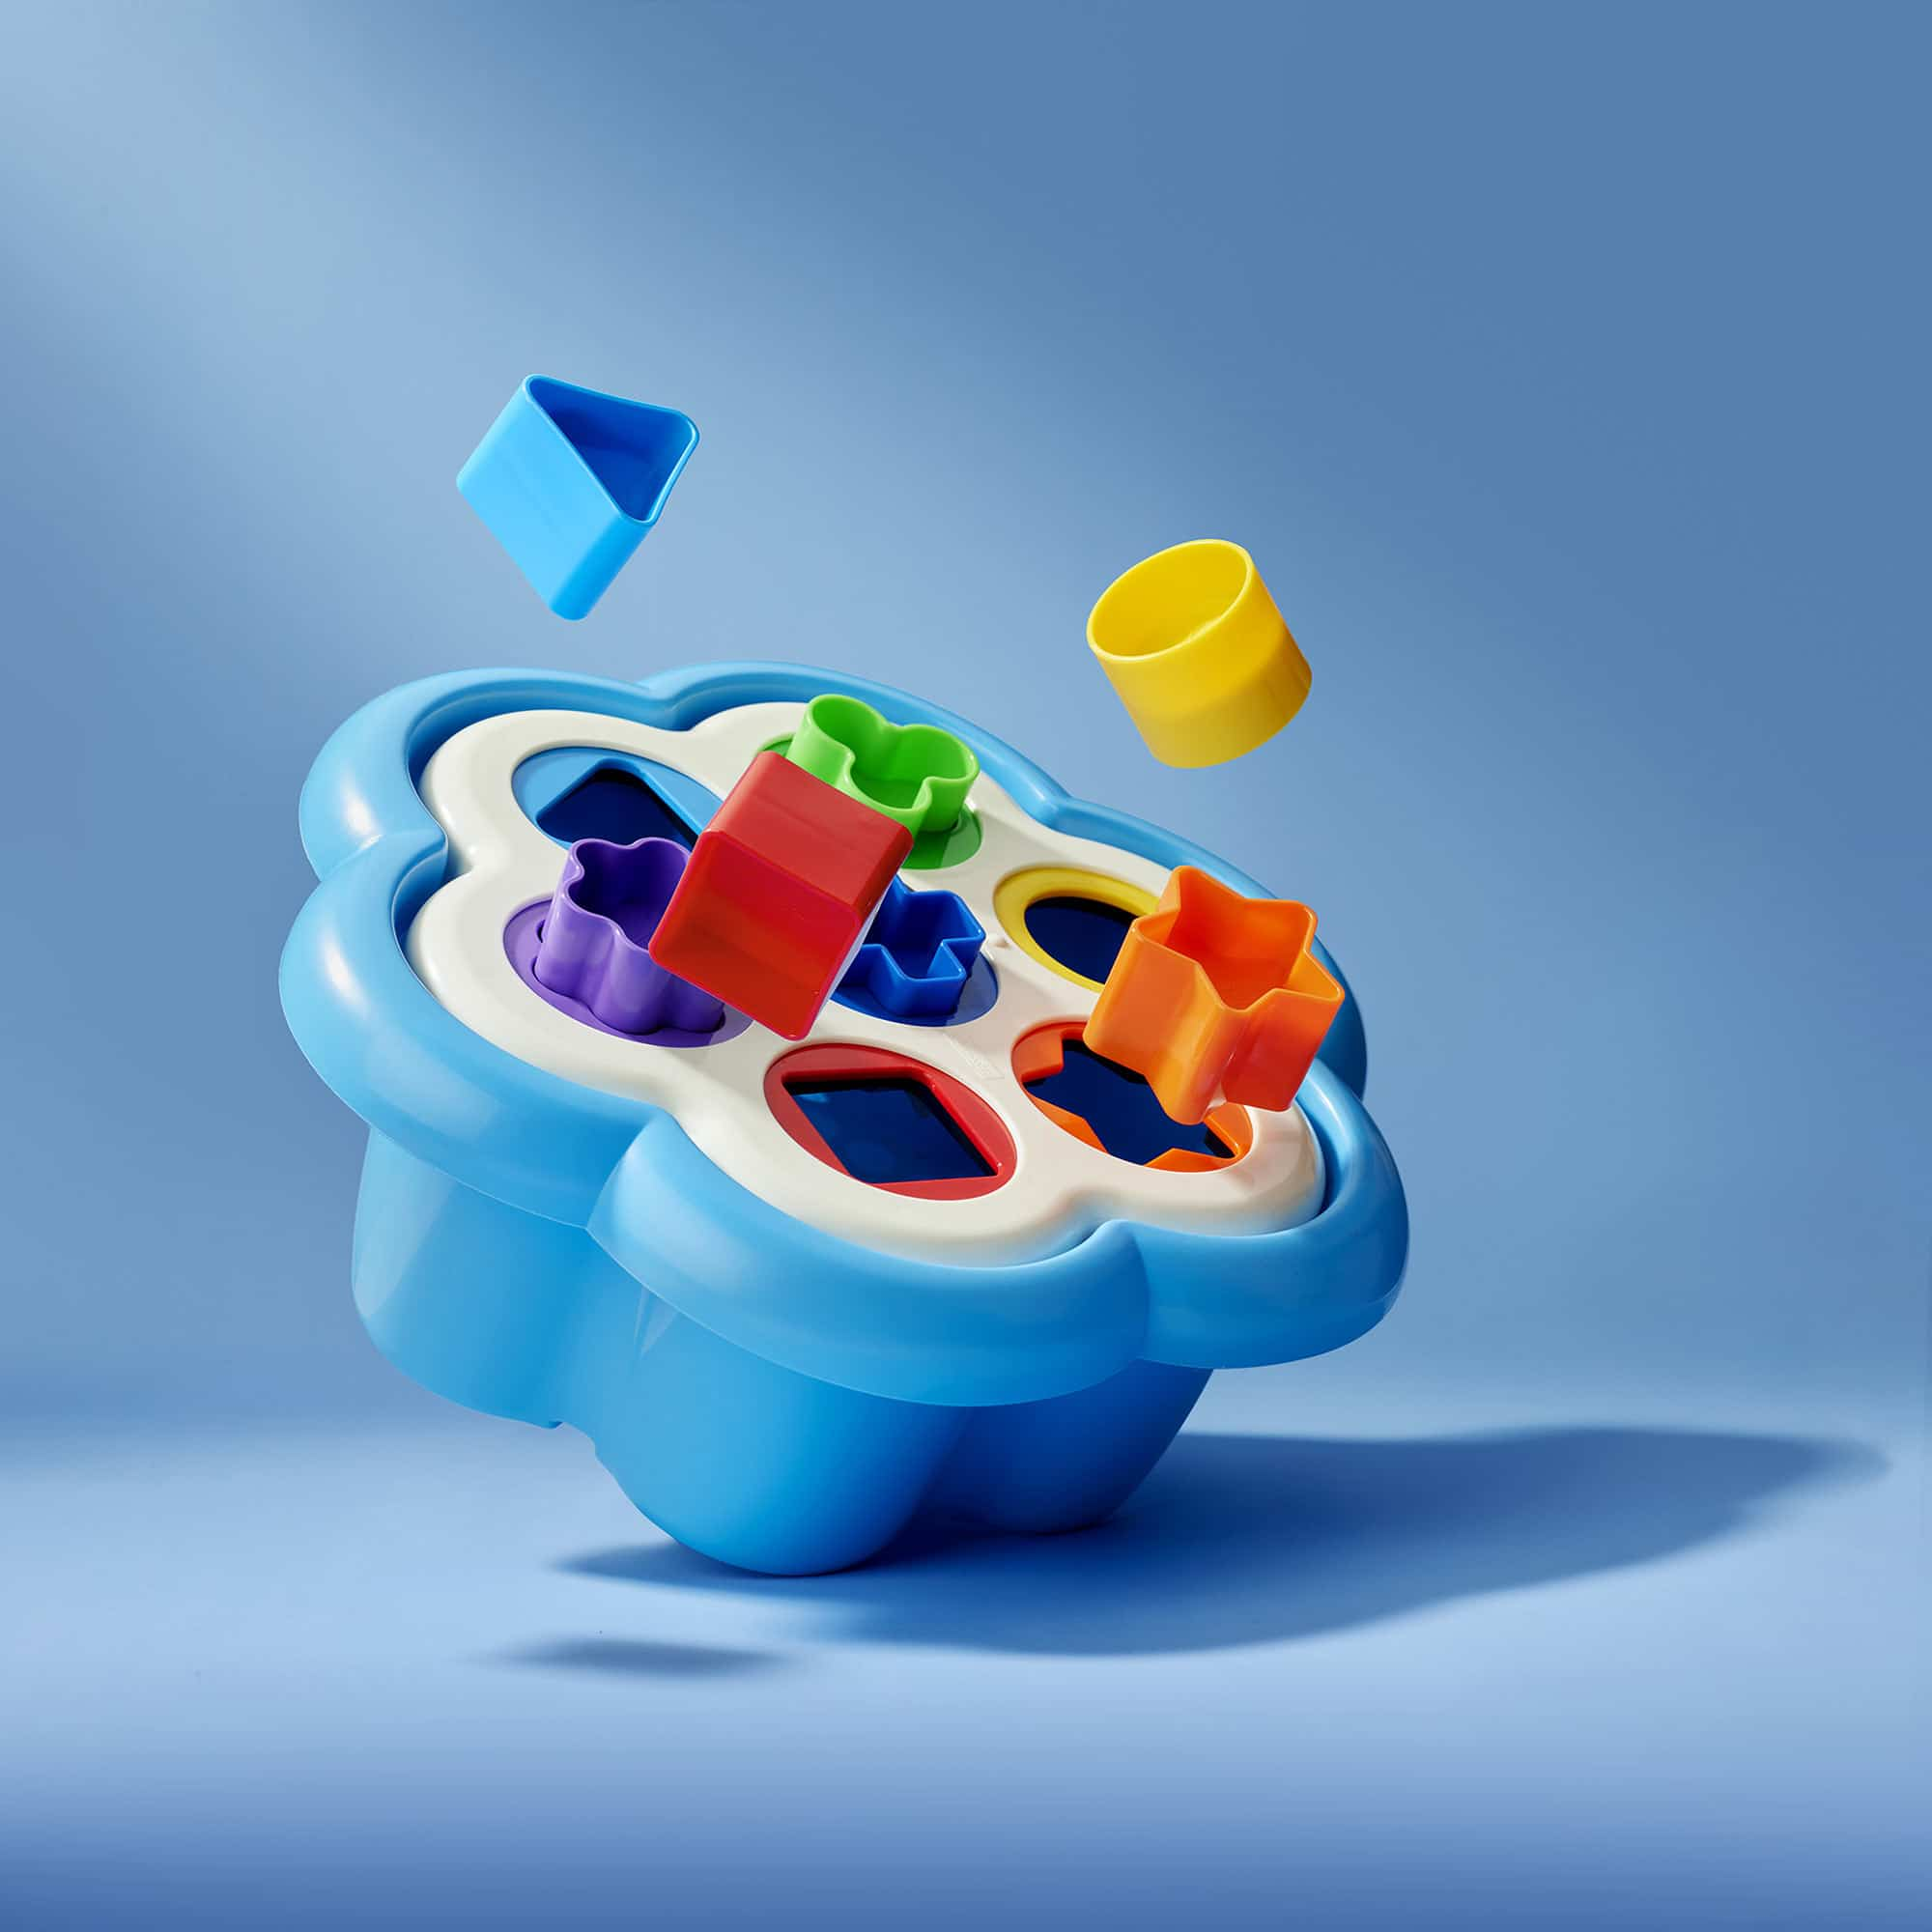 Blue Kids Toy Still Life Shot for Corepla by Fotografando